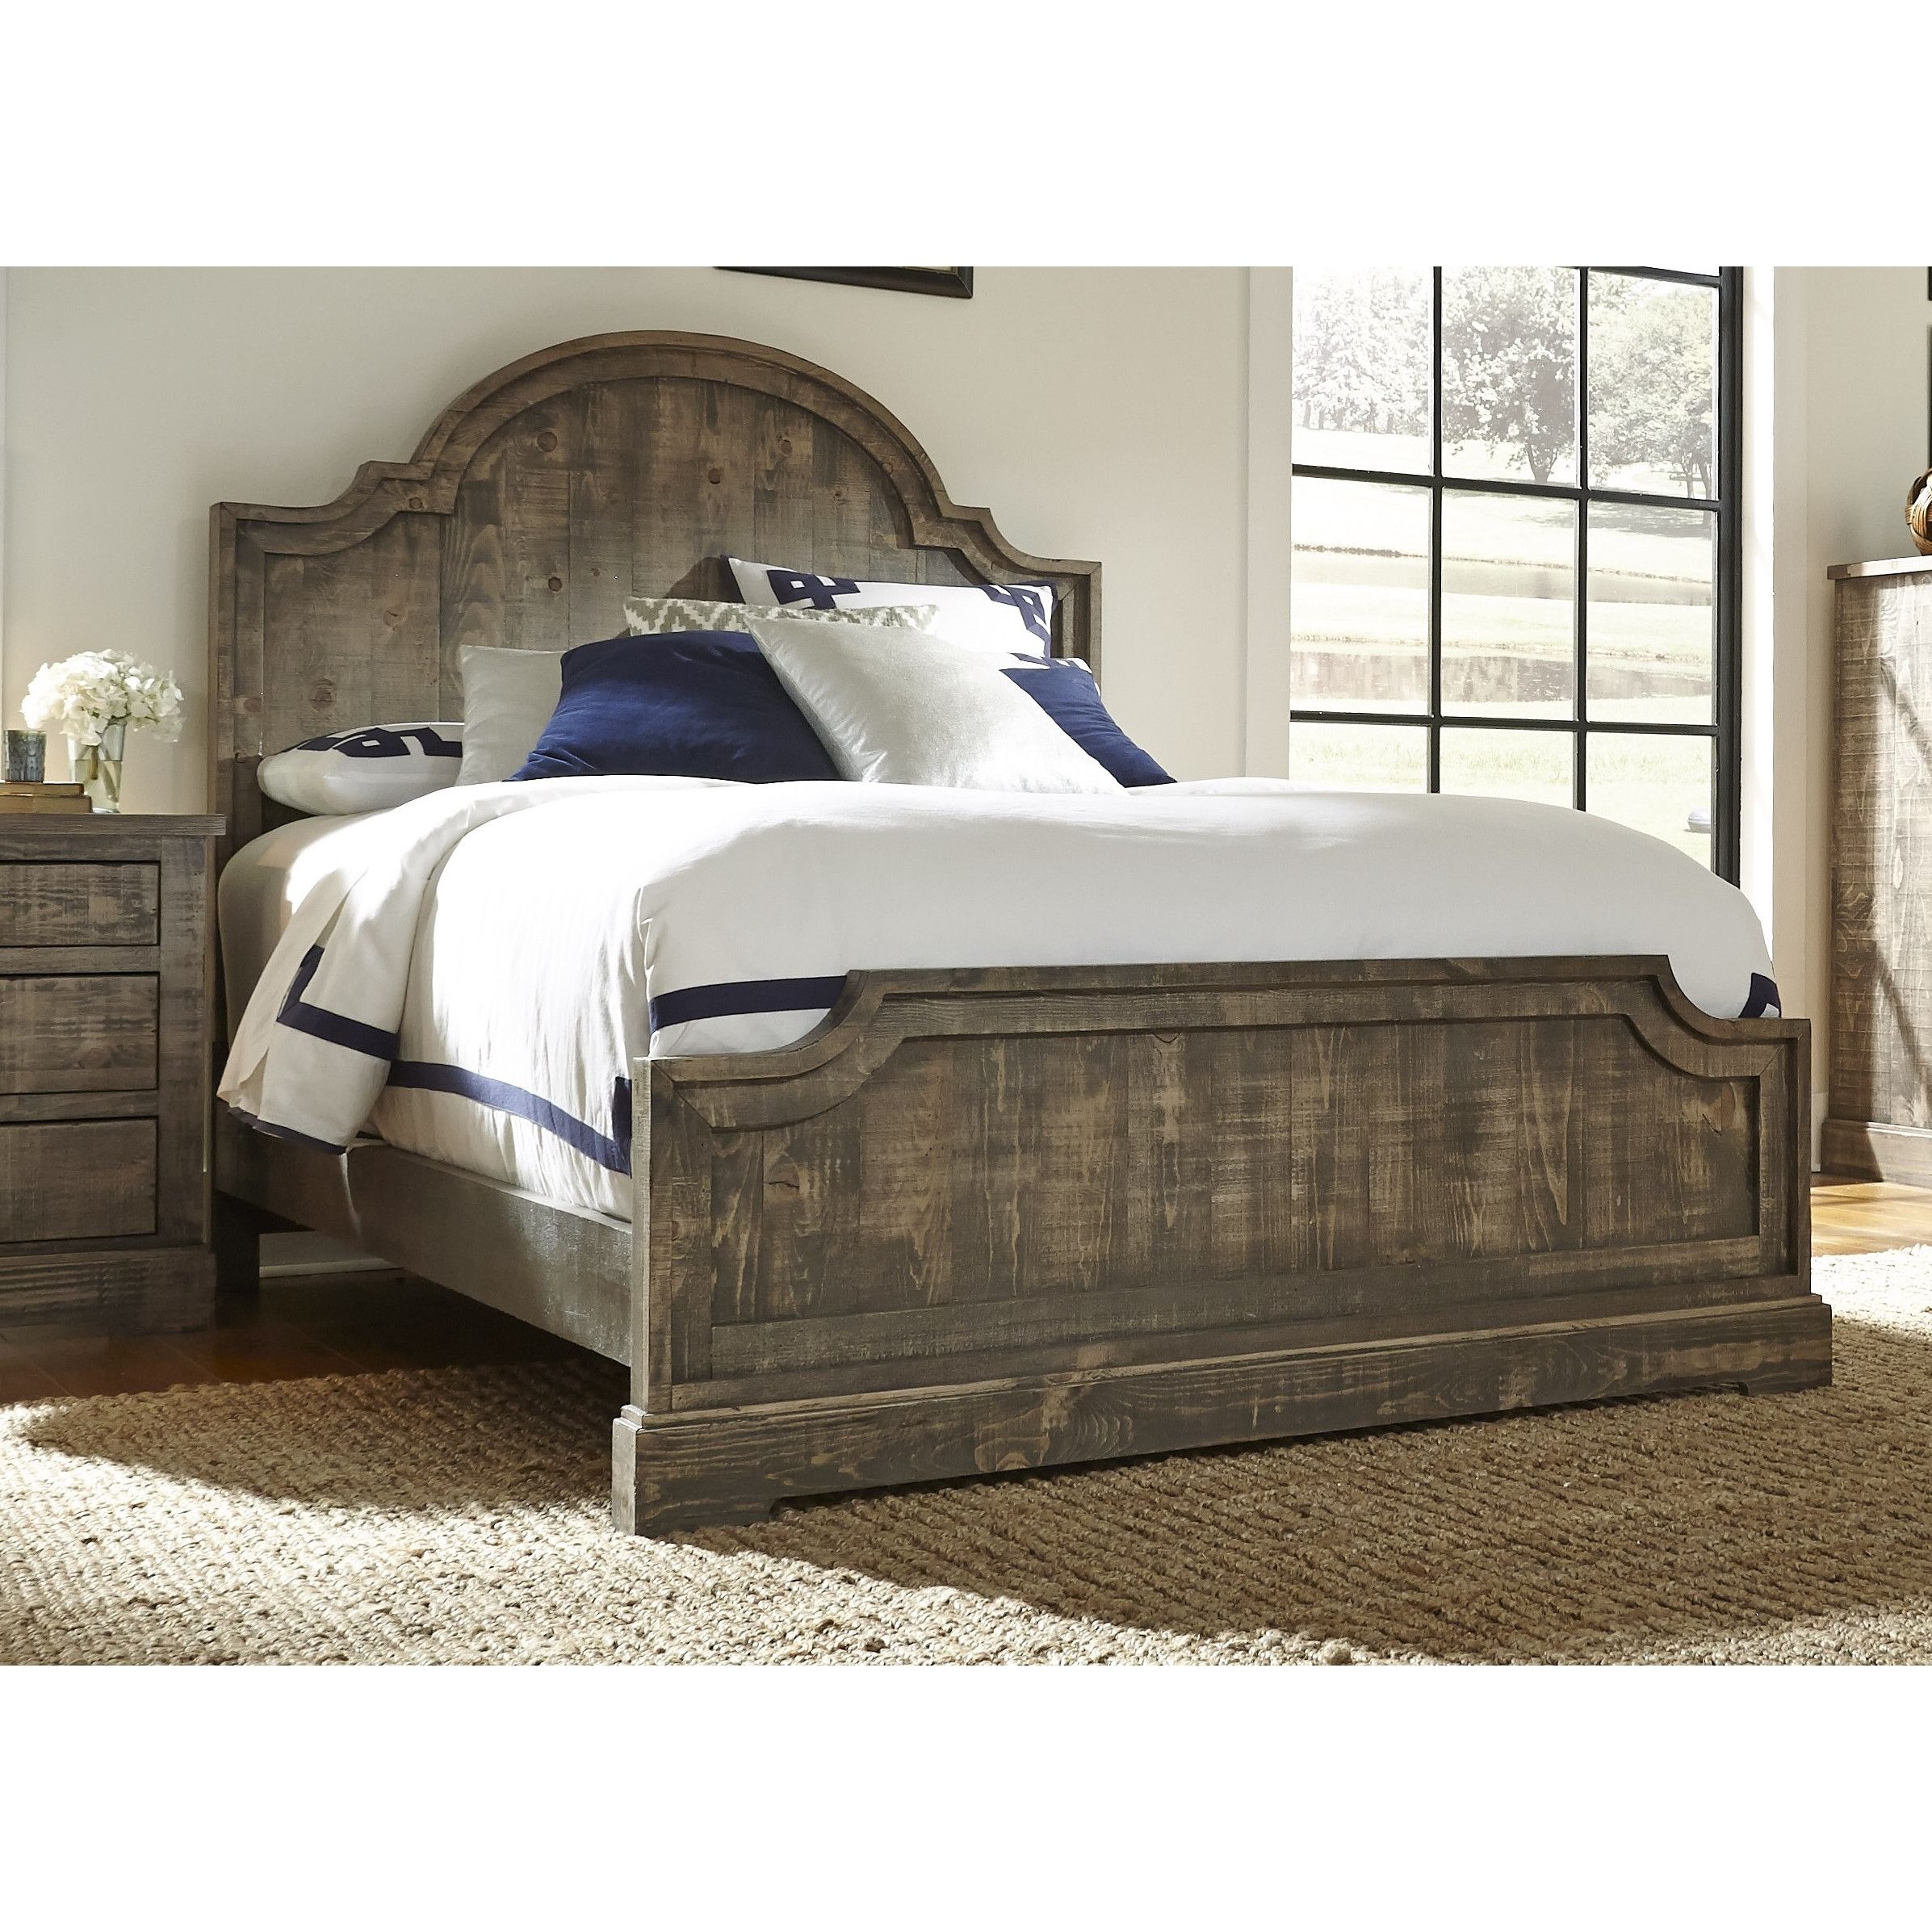 august grove® buford platform bed  master bedroom  pinterest  - august grove® buford platform bed